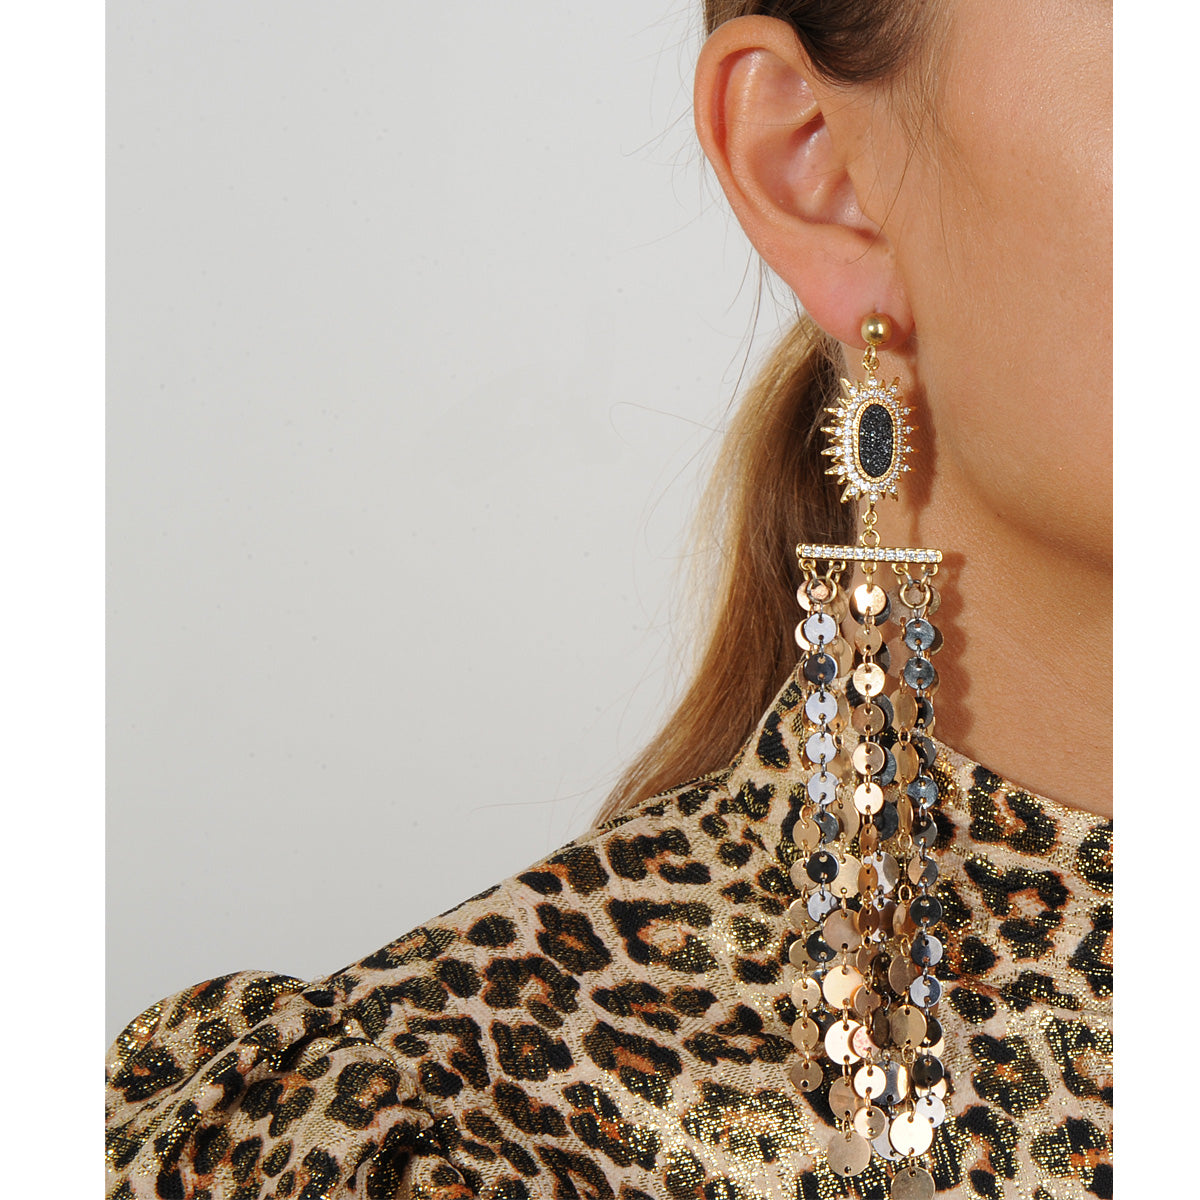 dangle earrings with metal chains and druzies 925 silver studs katerina psoma perfect for evening wear